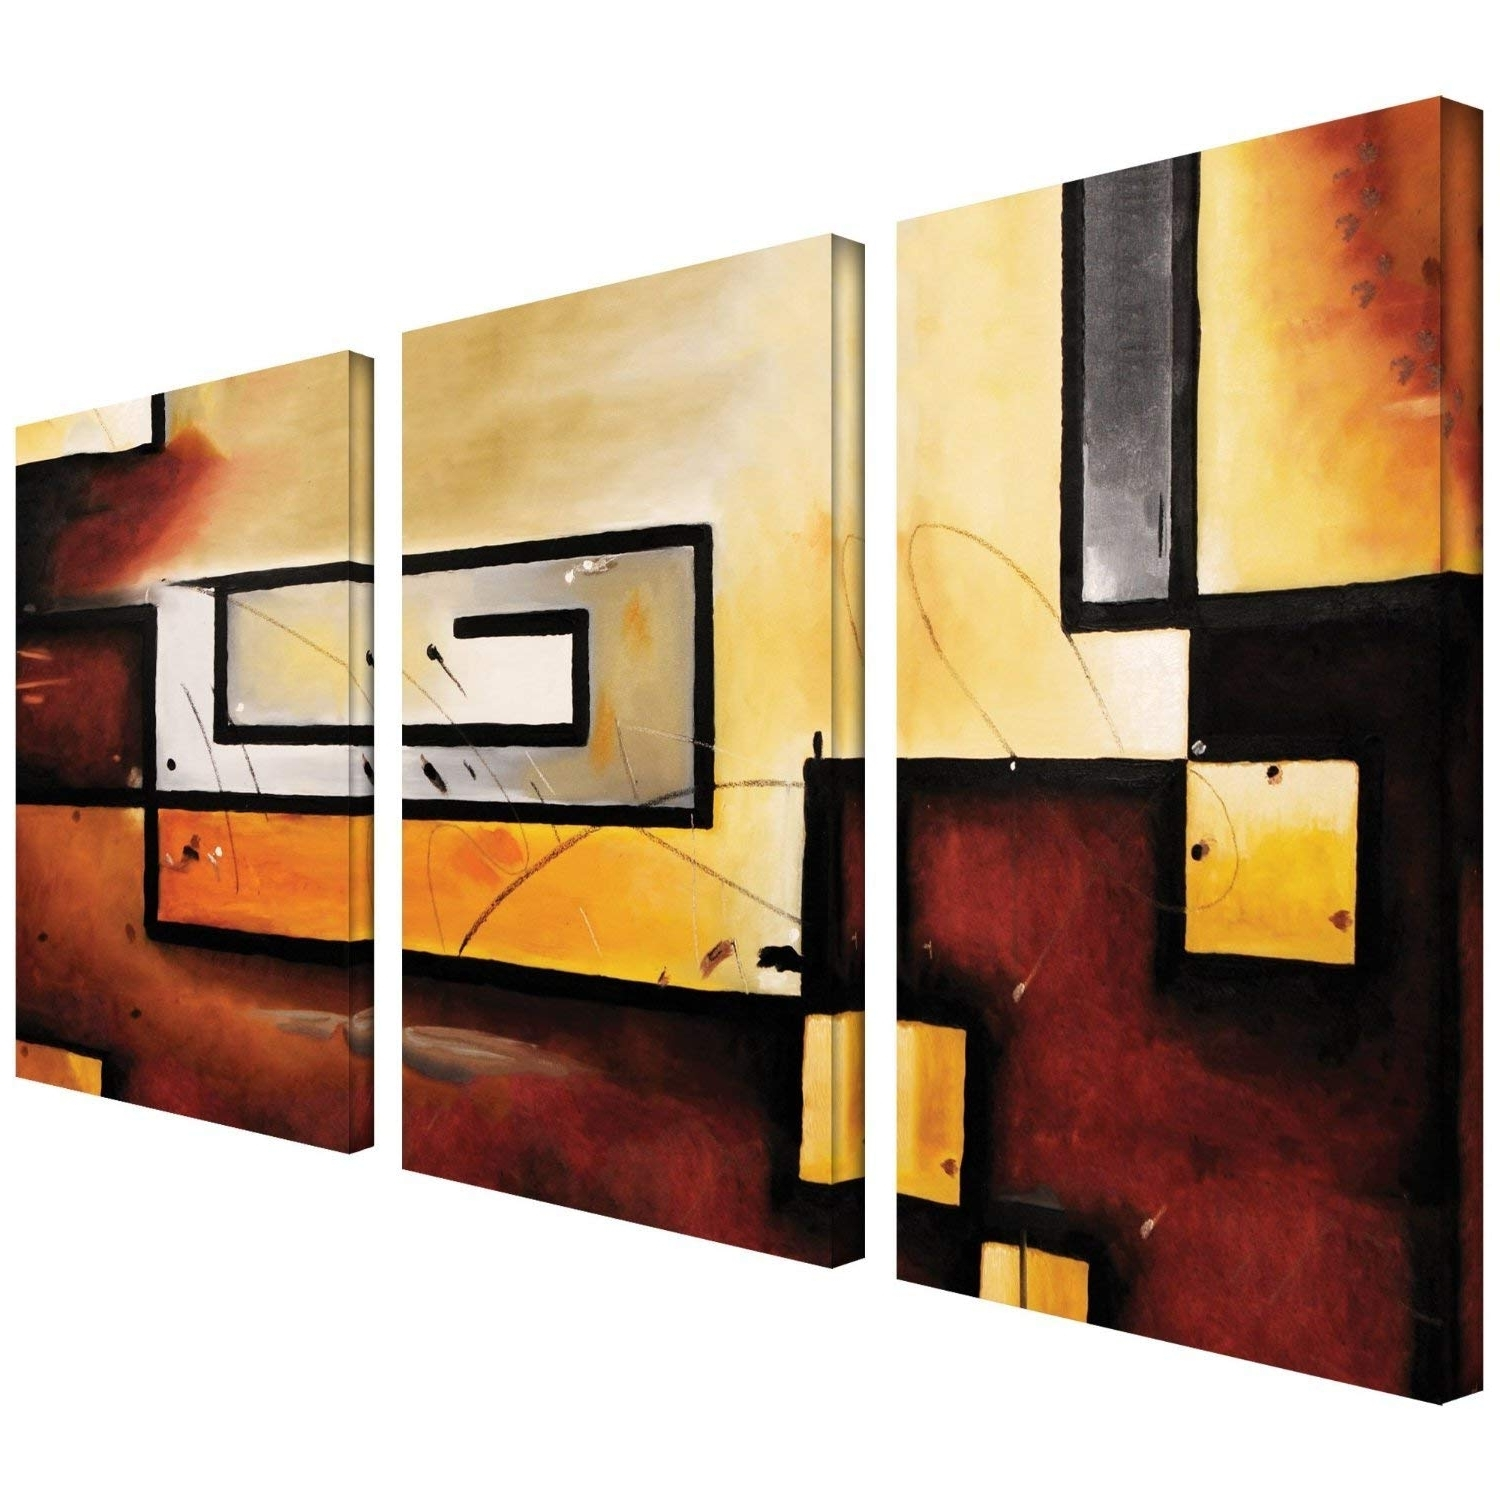 Wall Canvas Art Inside Widely Used Amazon: Art Wall 3 Piece Abstract Modern Gallery Wrapped Canvas (View 12 of 15)